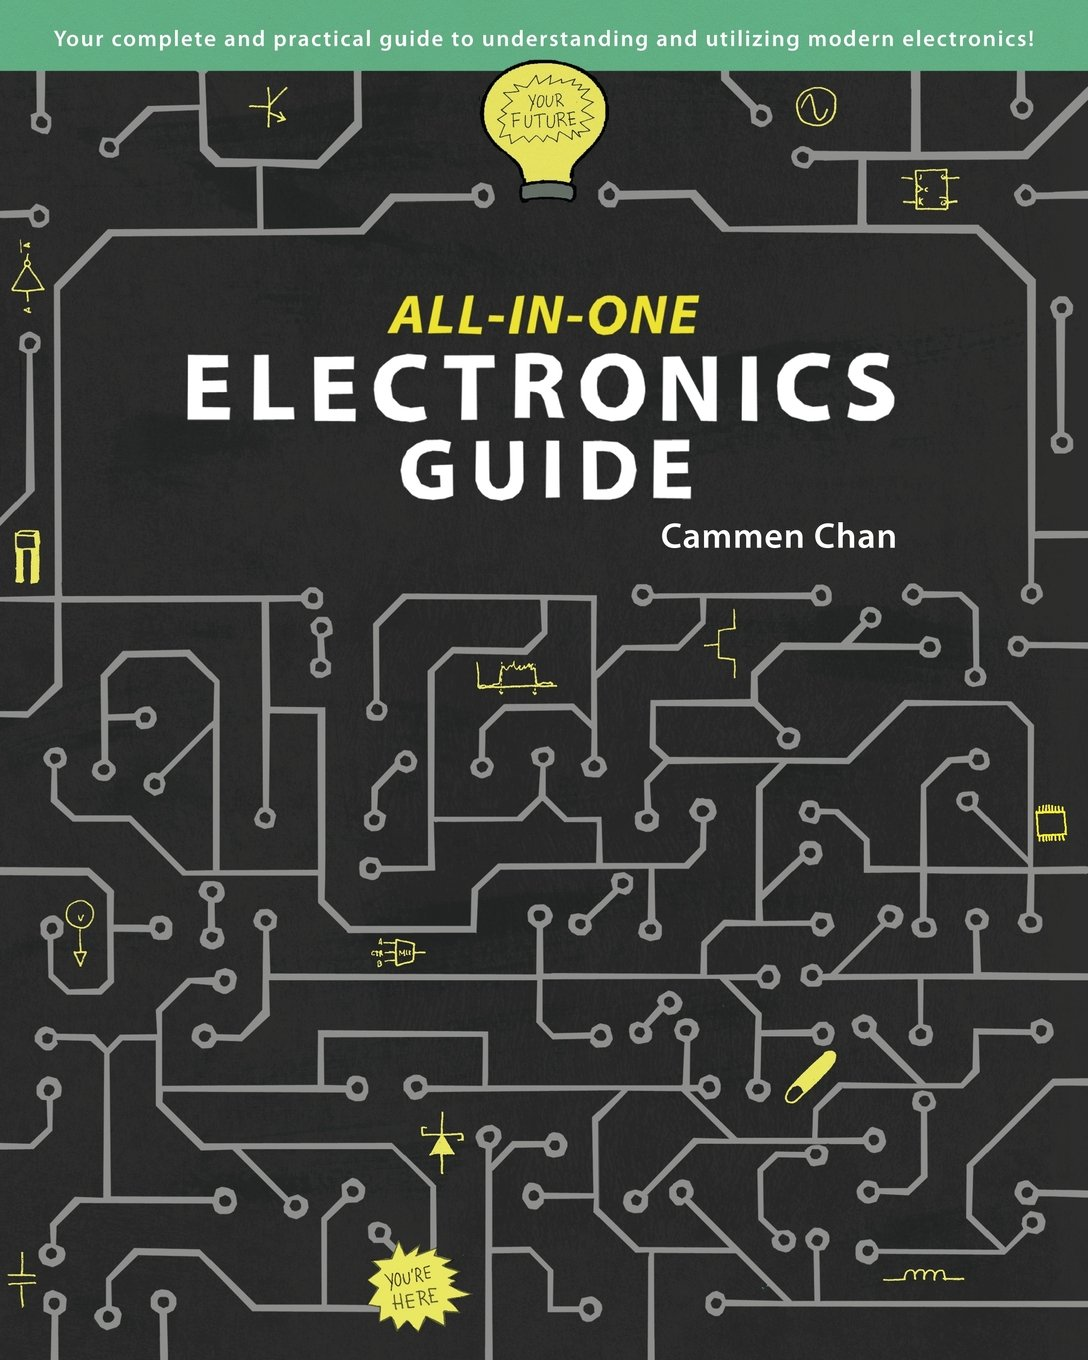 All-in-One Electronics Guide: Cammen Chan: 9781479117376: Amazon.com: Books